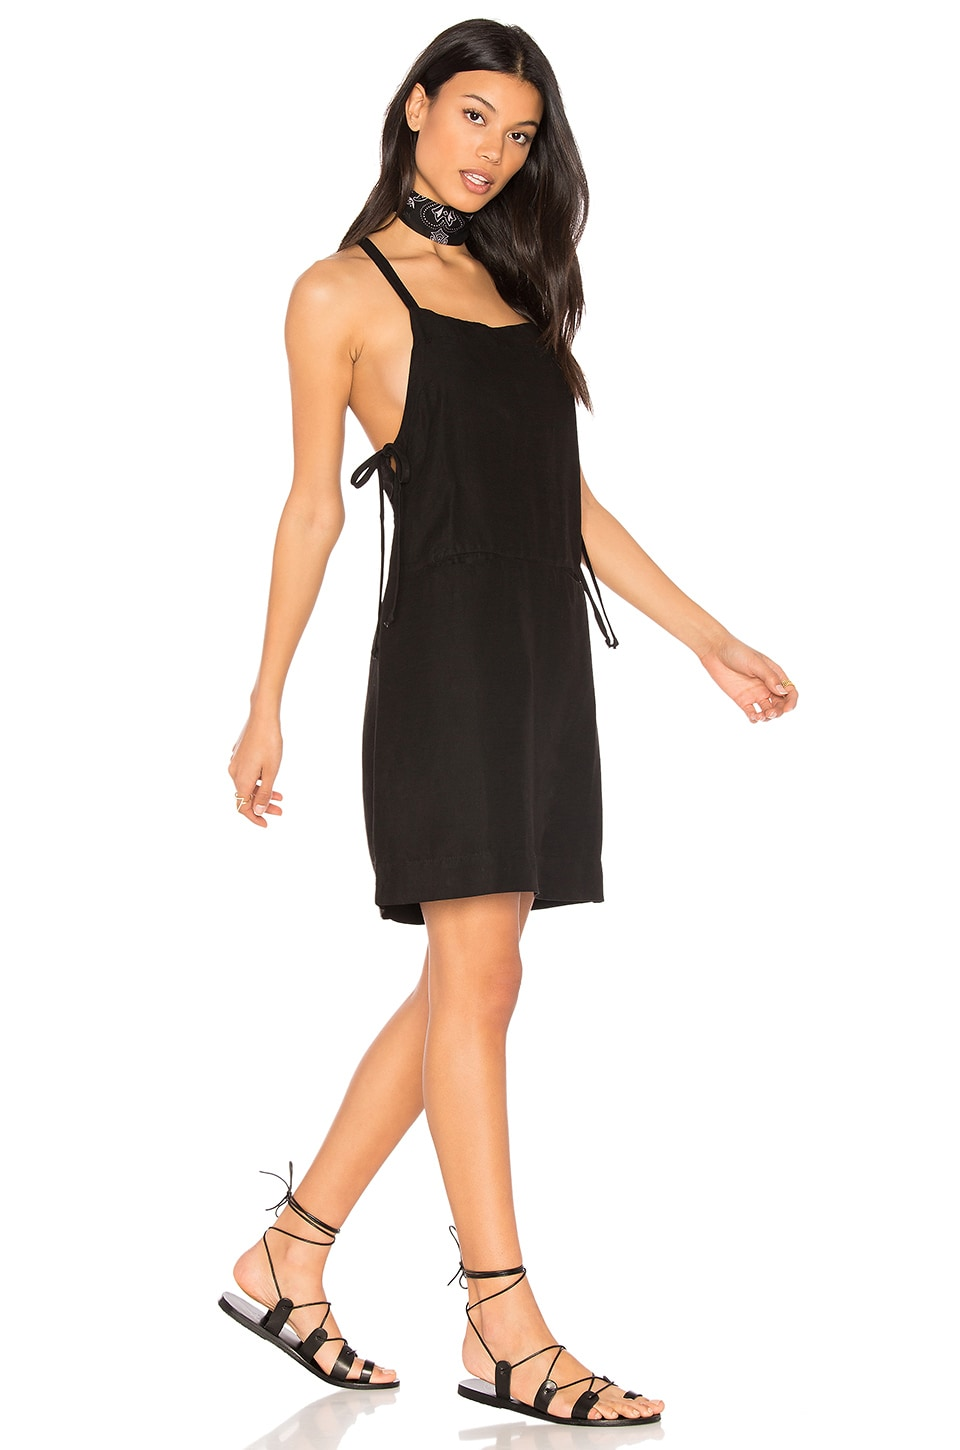 YORK street Bib Slip Dress with Ties in Black